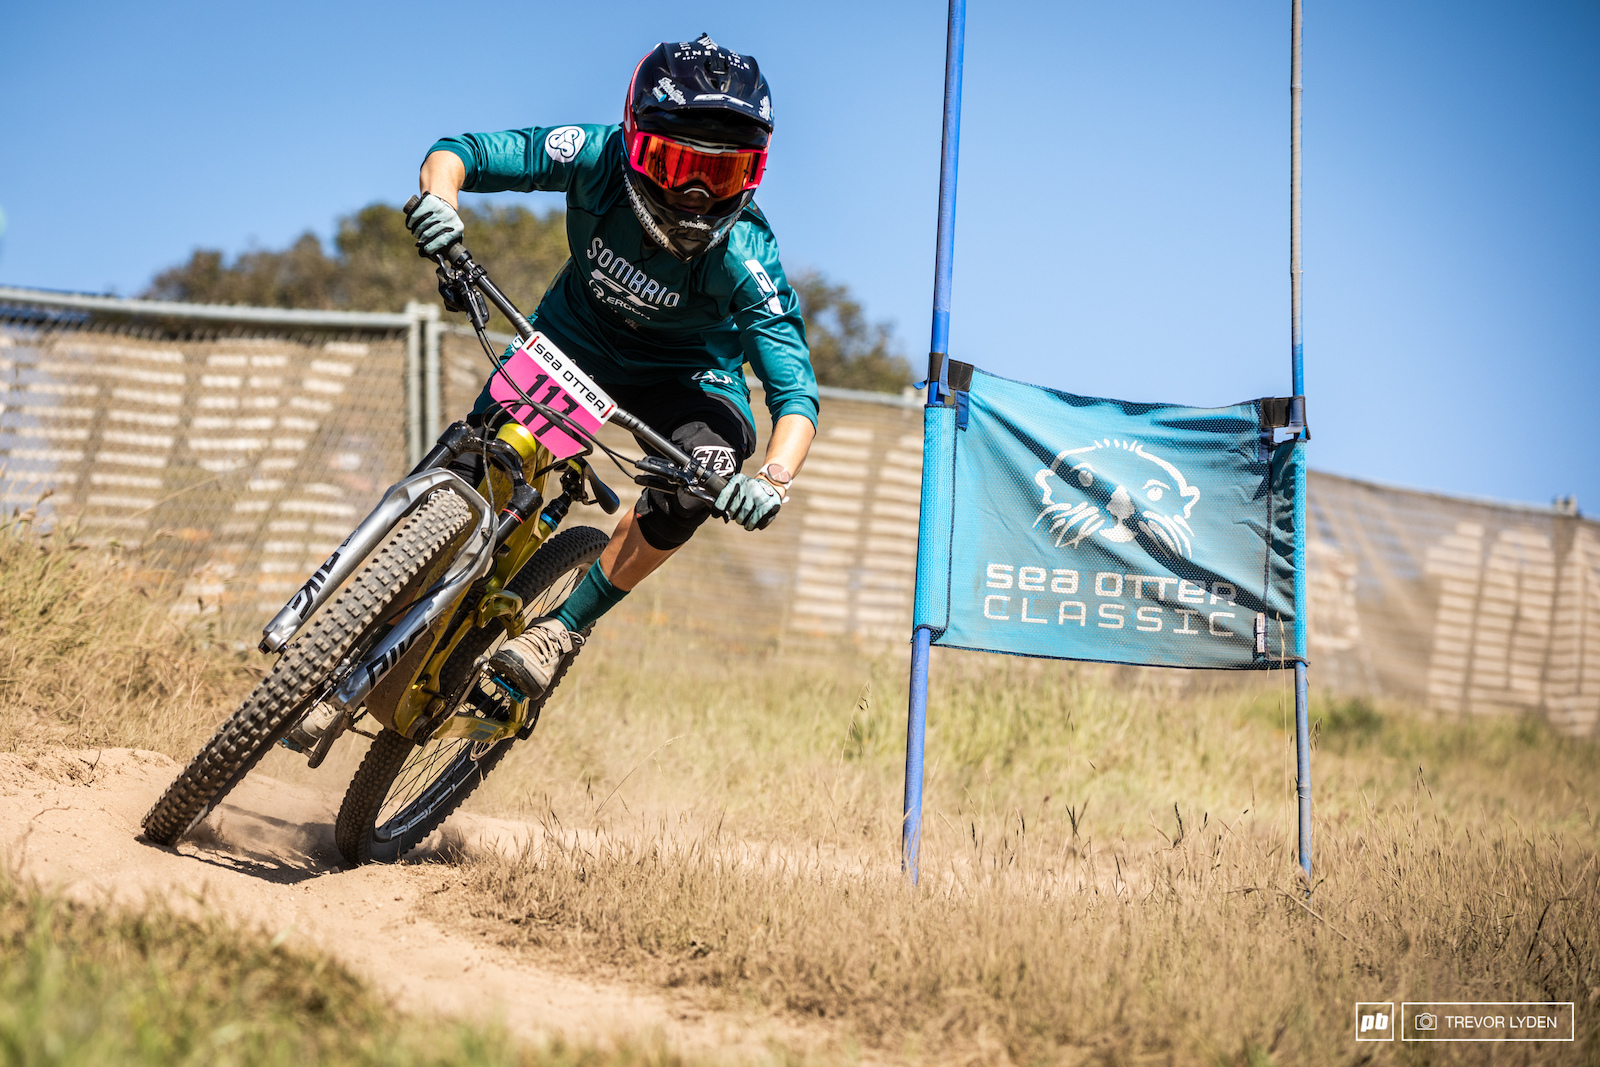 Rachel Strait on one of the top corners of the dual slalom course.